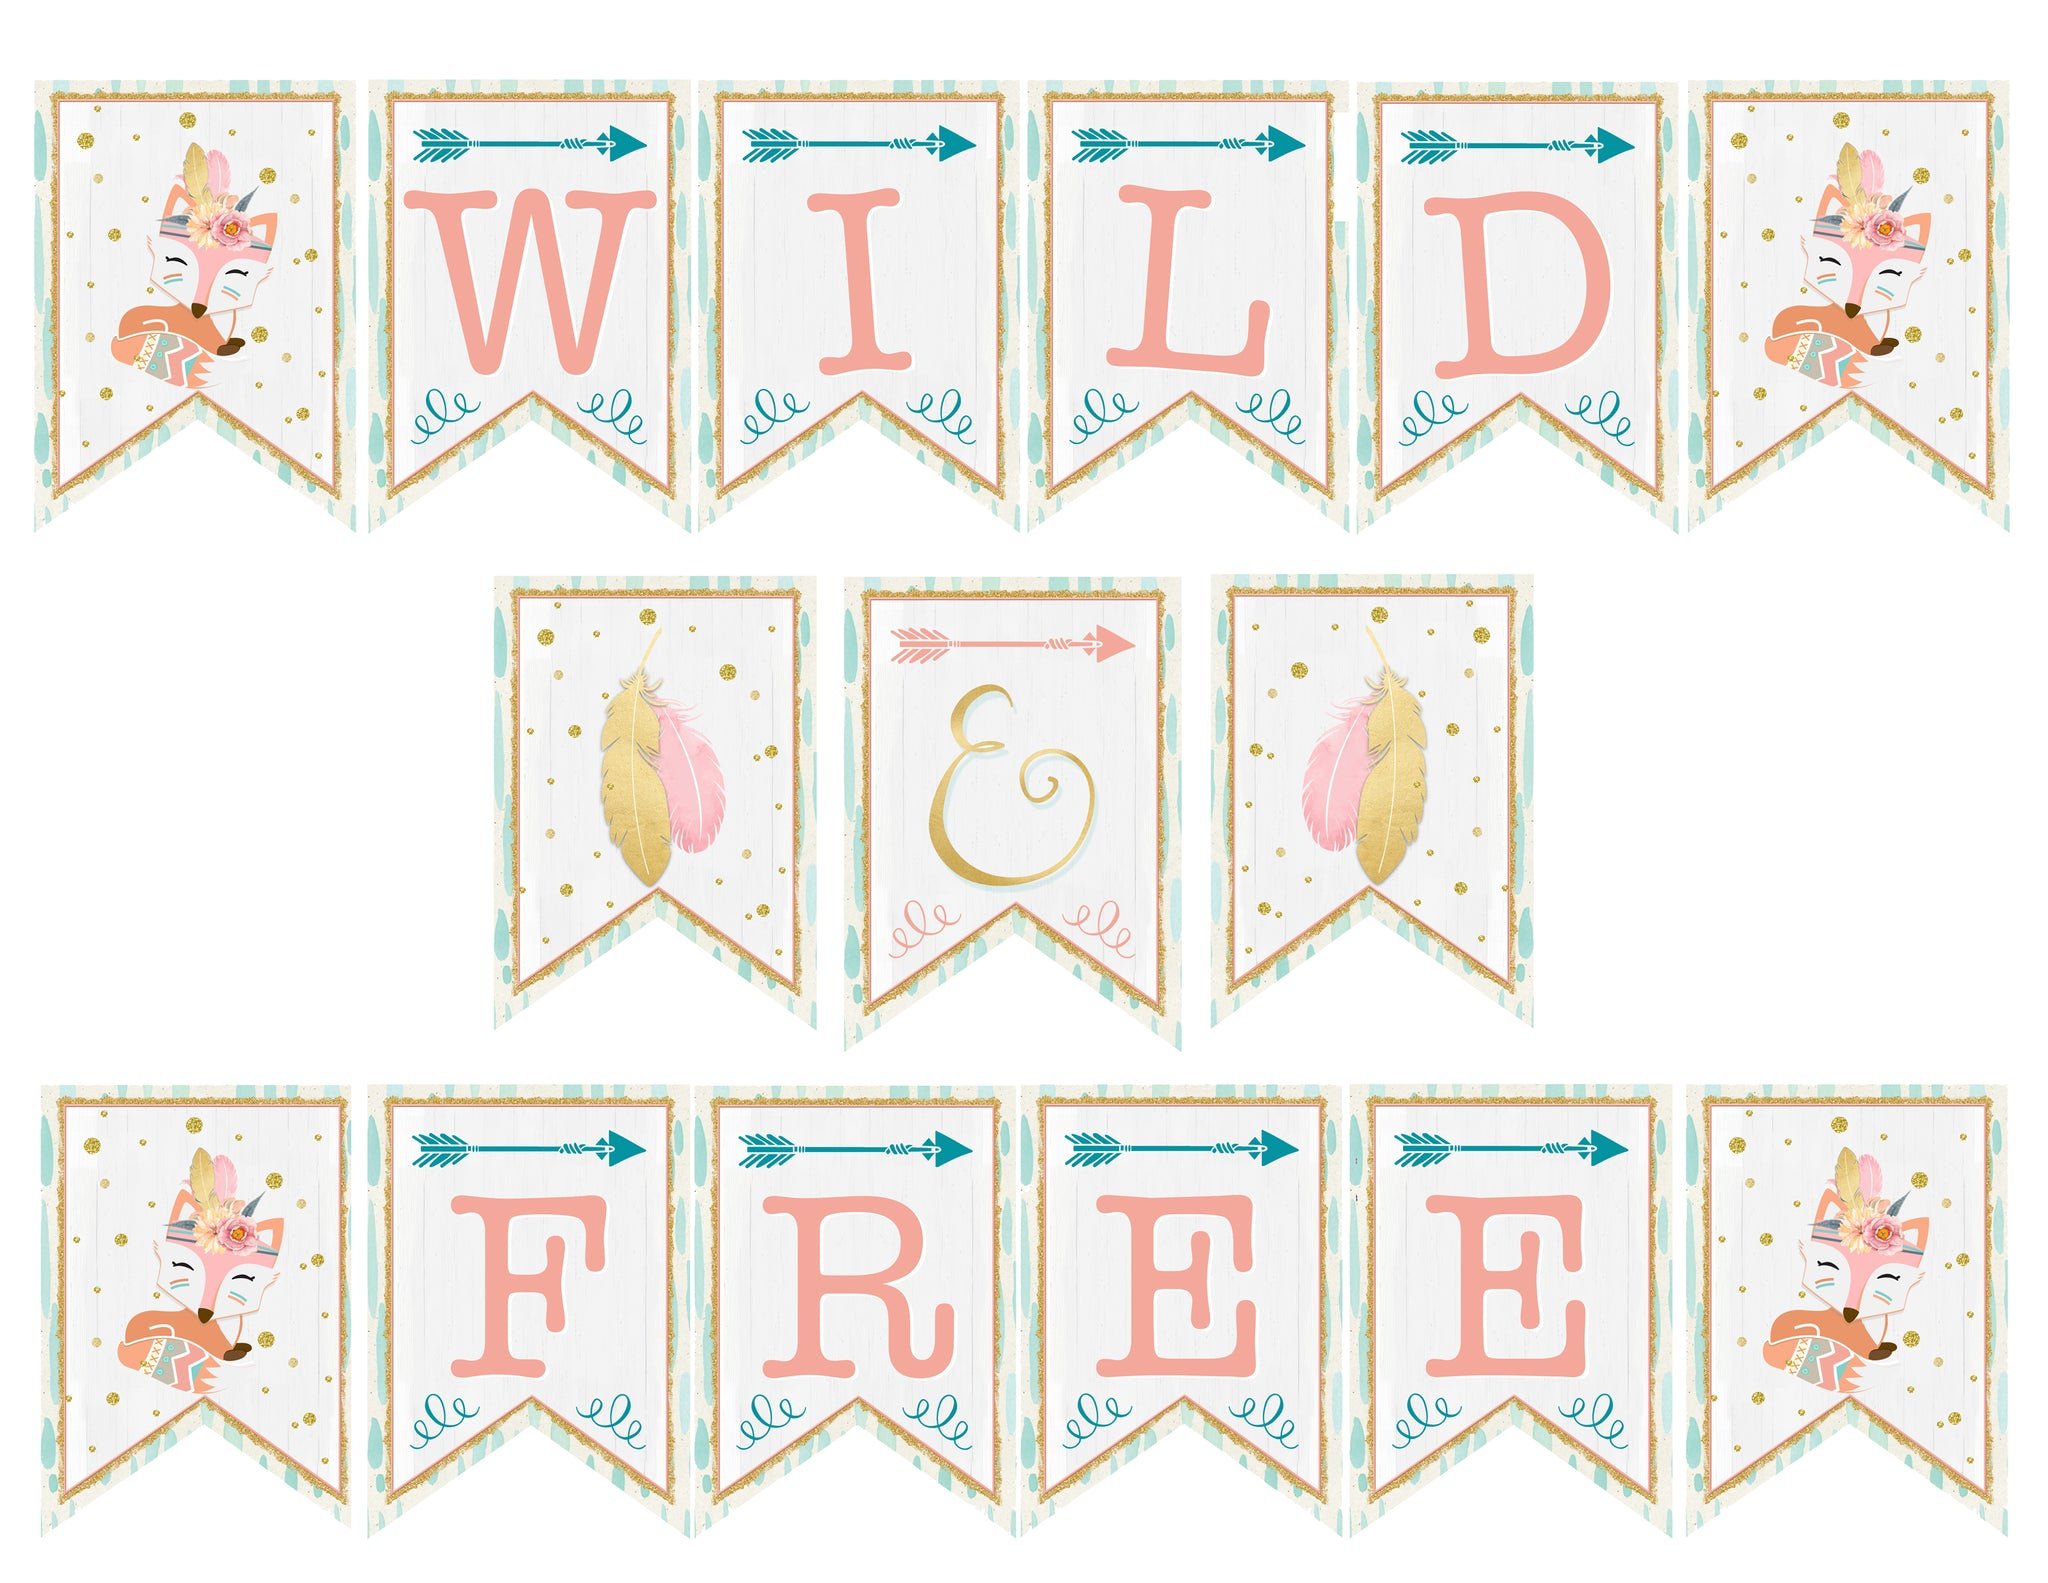 photograph regarding Free Birthday Banner Printable named Tribal Wild and No cost Birthday Pennant Banner - Printable